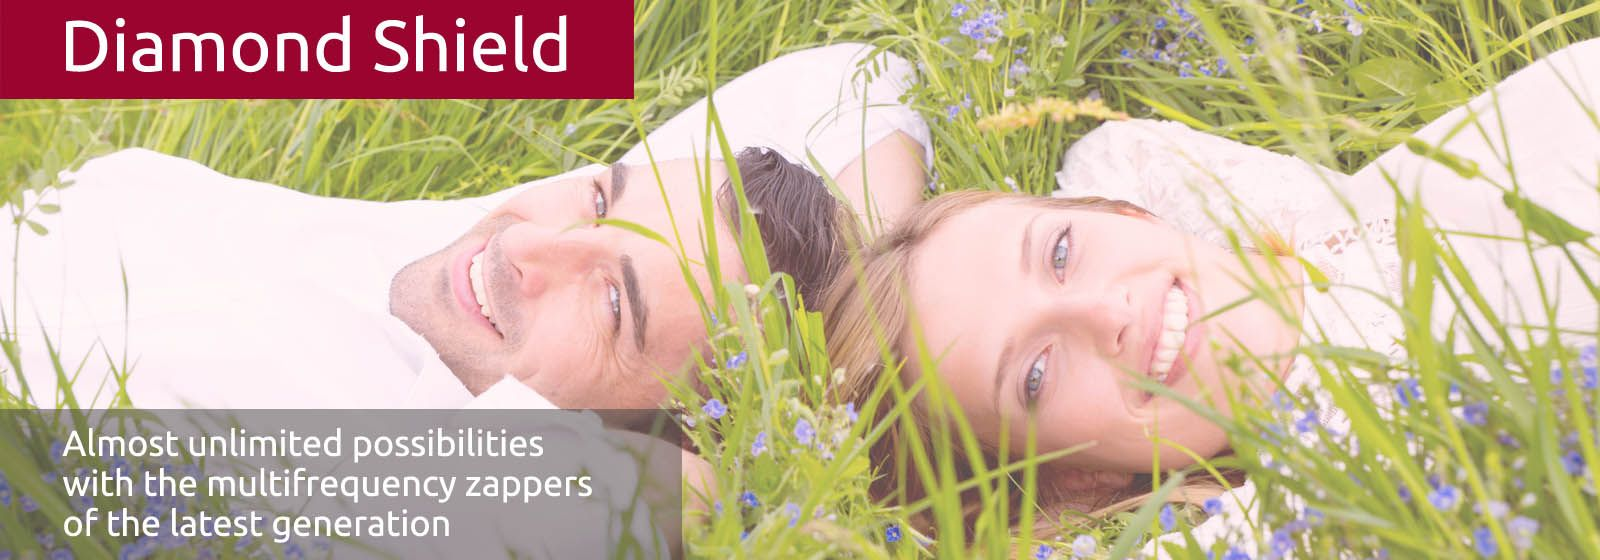 A young couple lies head to head smiling in the grass